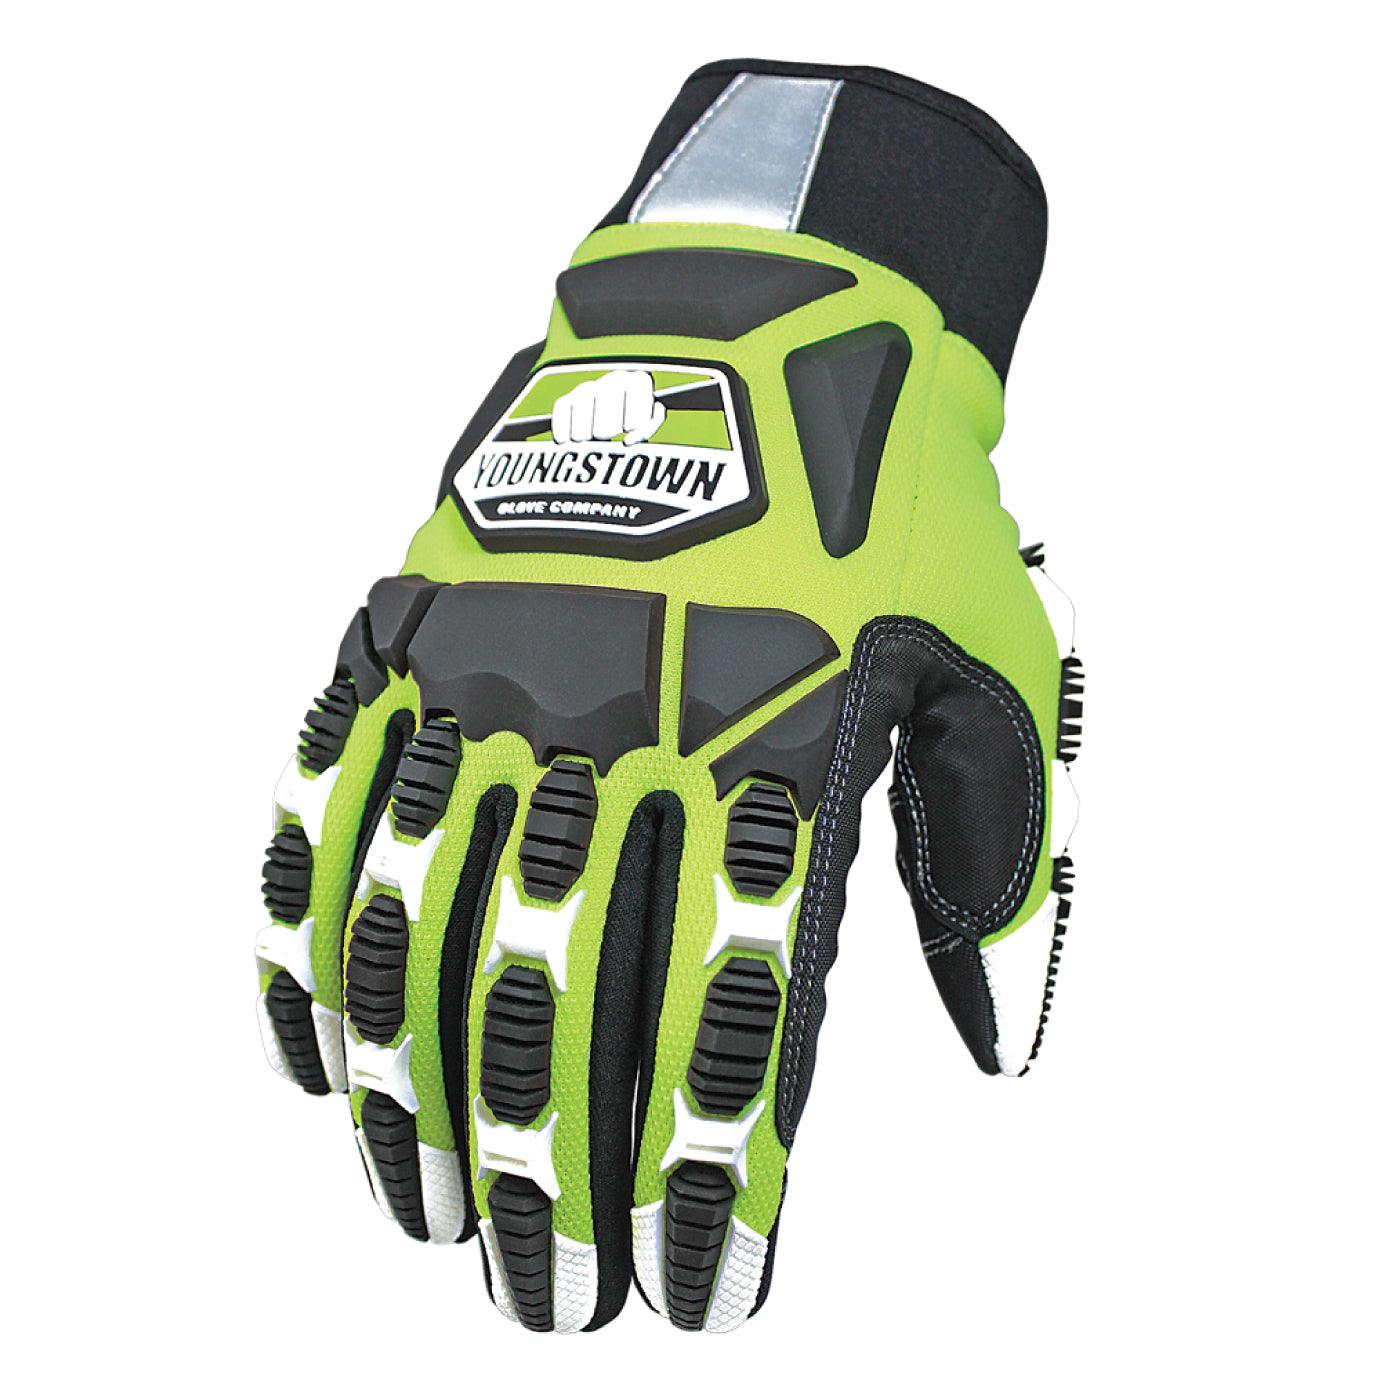 09-9083-10 Youngstown Cut Resistant Titan XT Glove - Main image